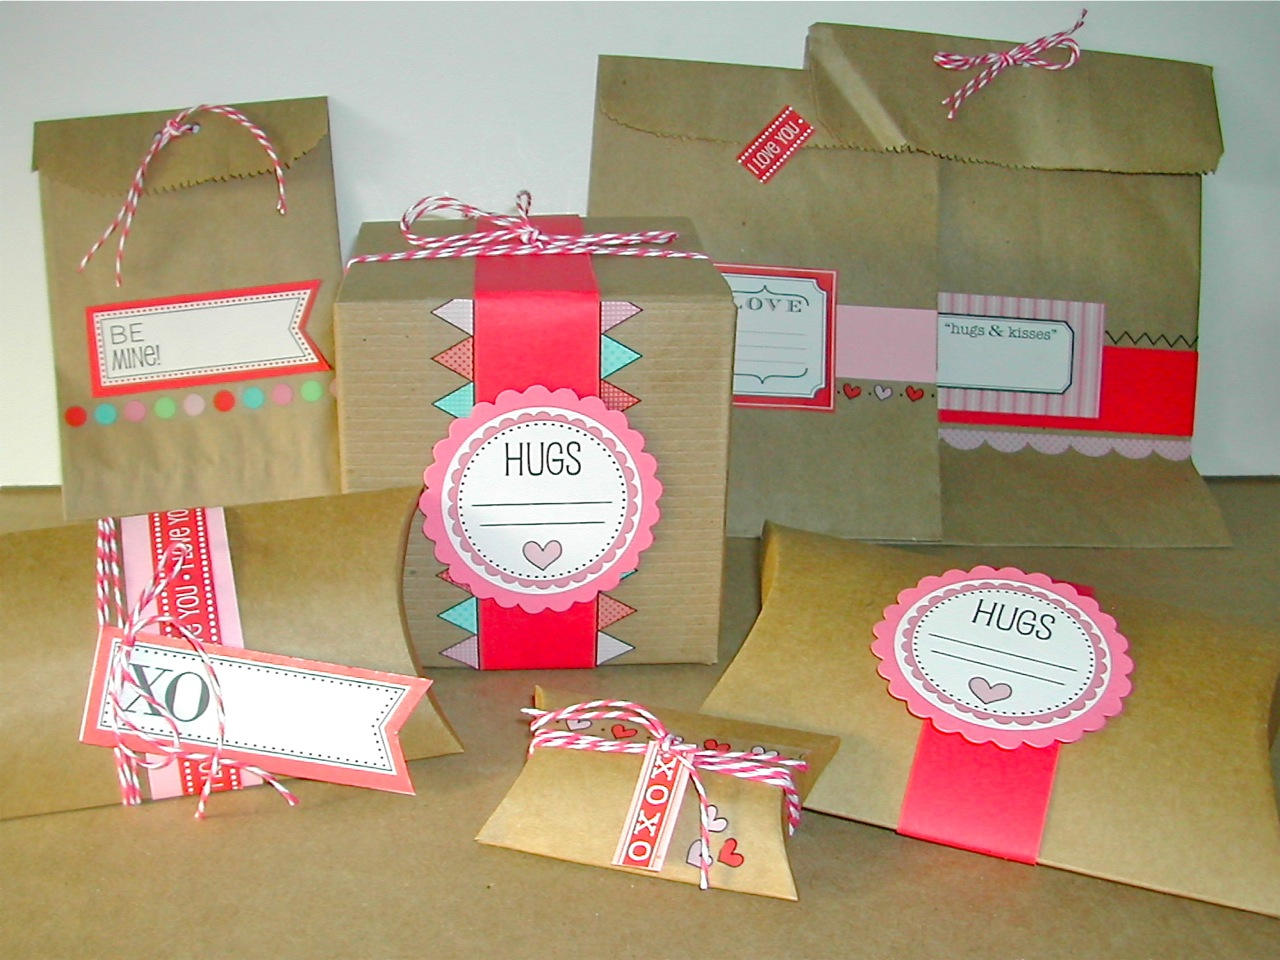 SRM Stickers Blog - NEW Kraft Boxes - #boxes #valentines #new #CHA #giftbox #favorbox #partyfavor #wedding